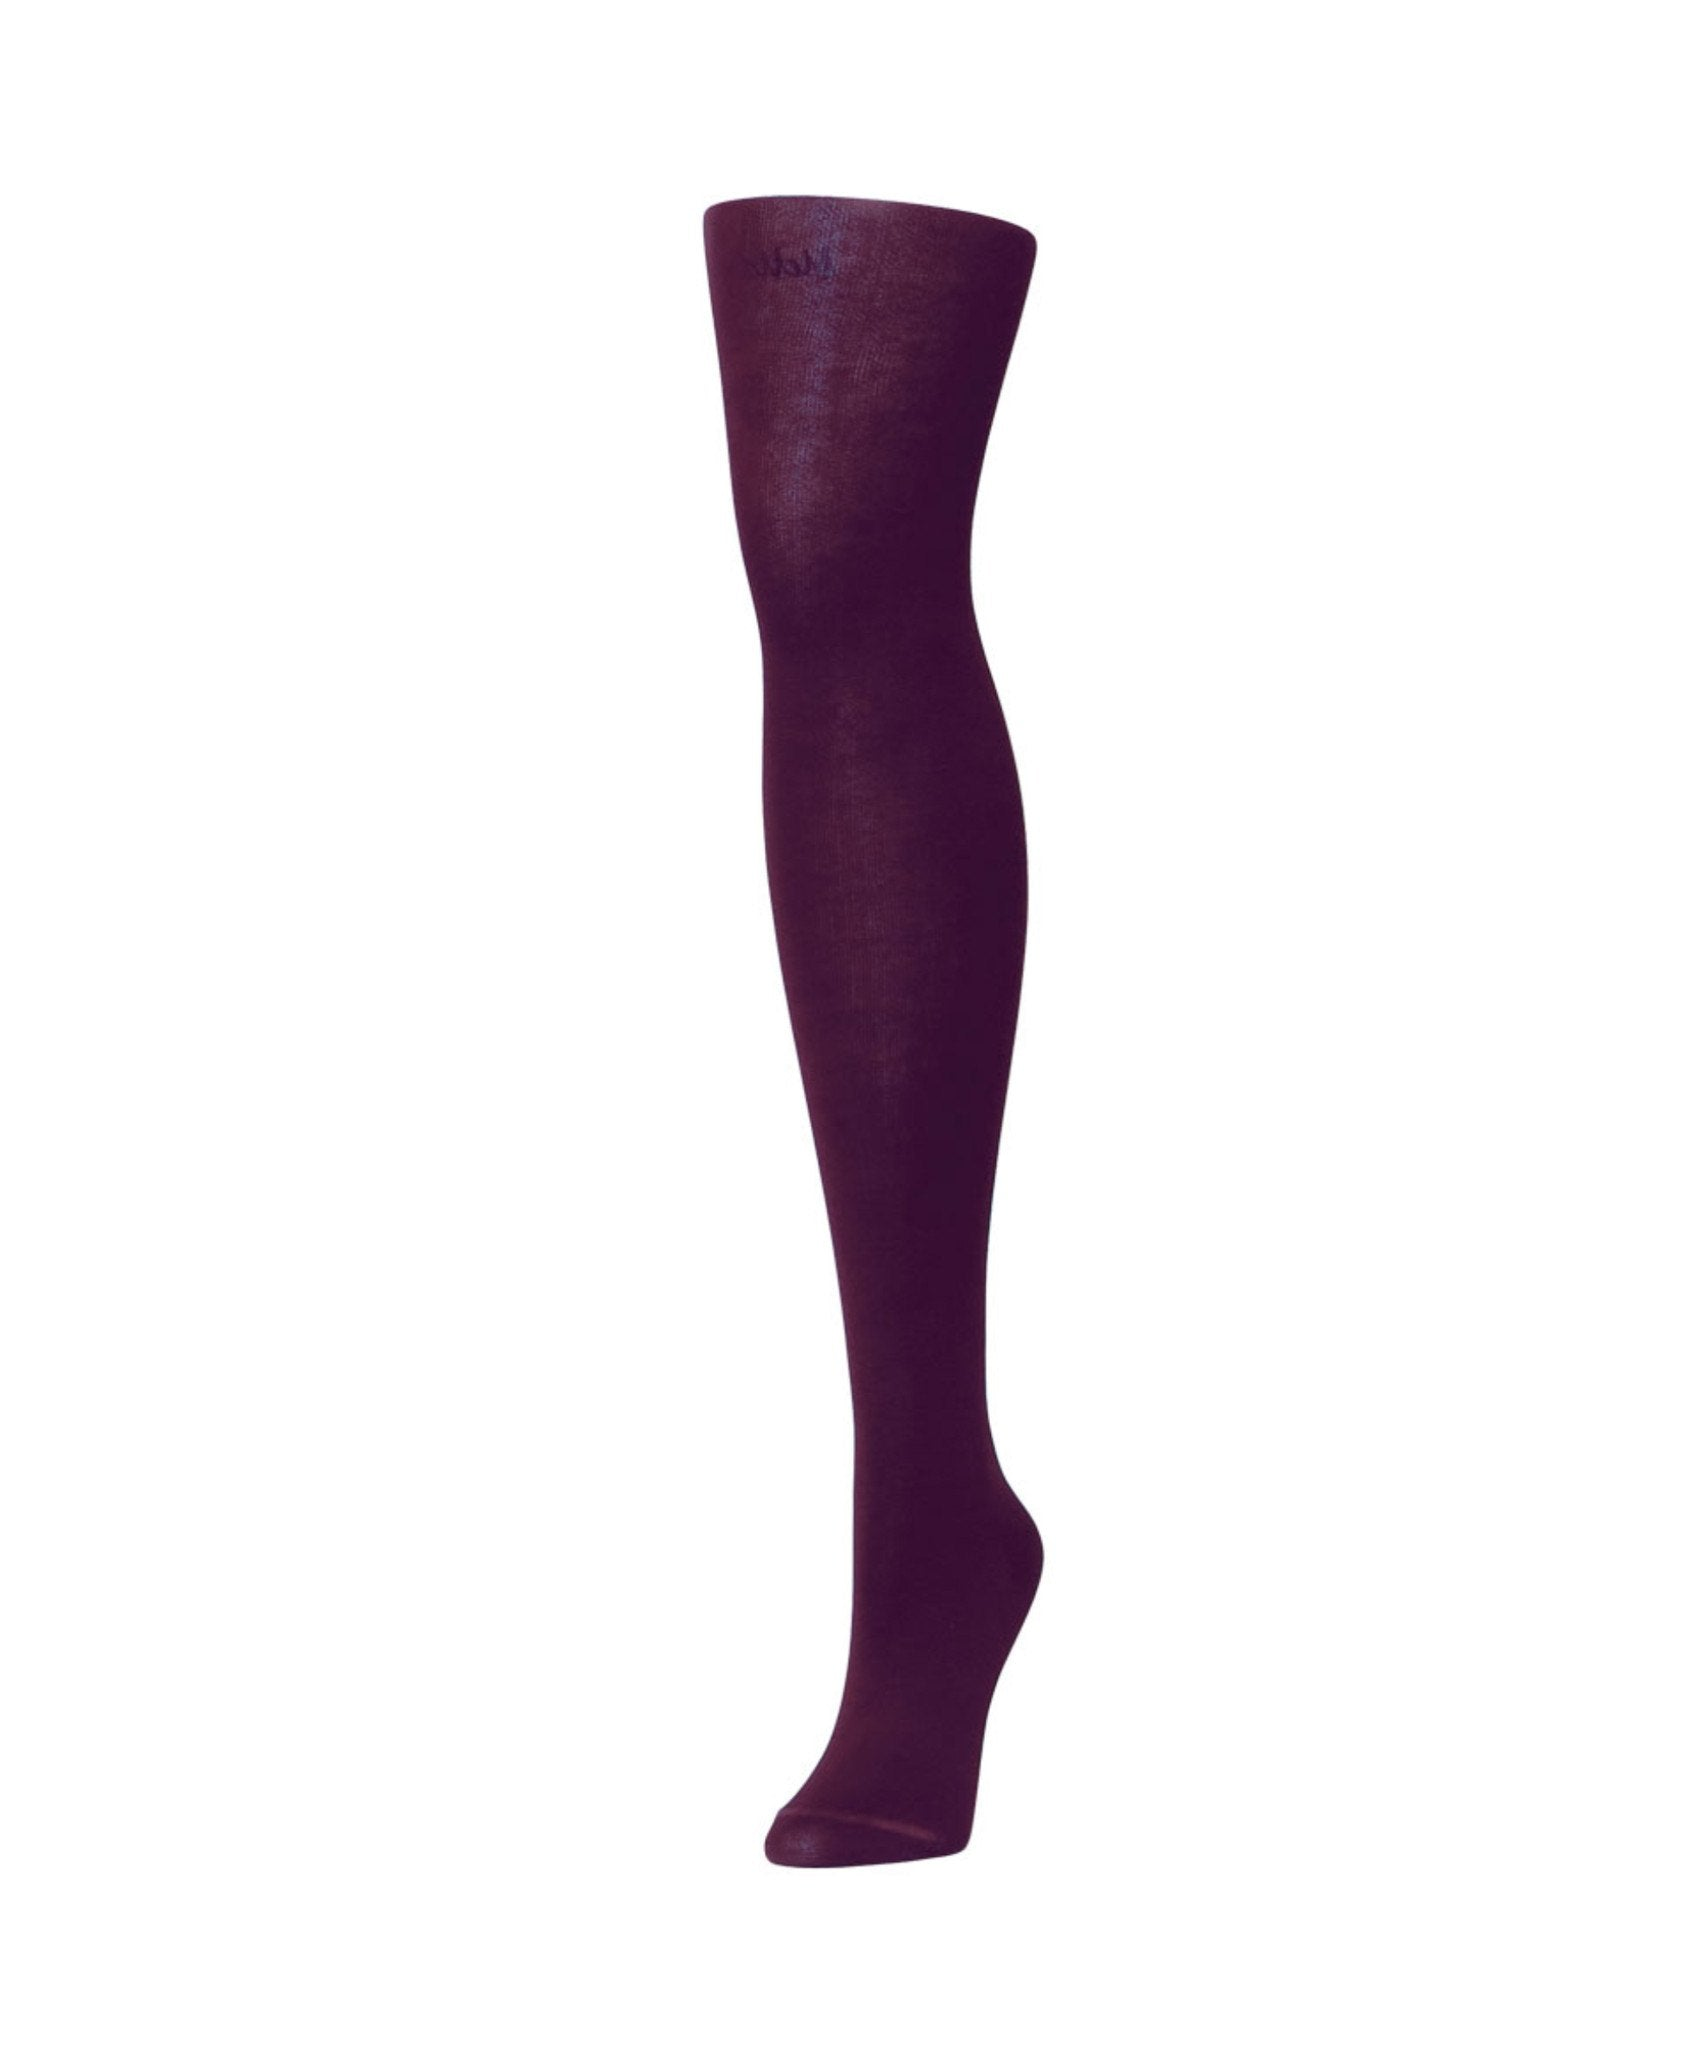 Natural Bamboo Tights - MeMoi - 5